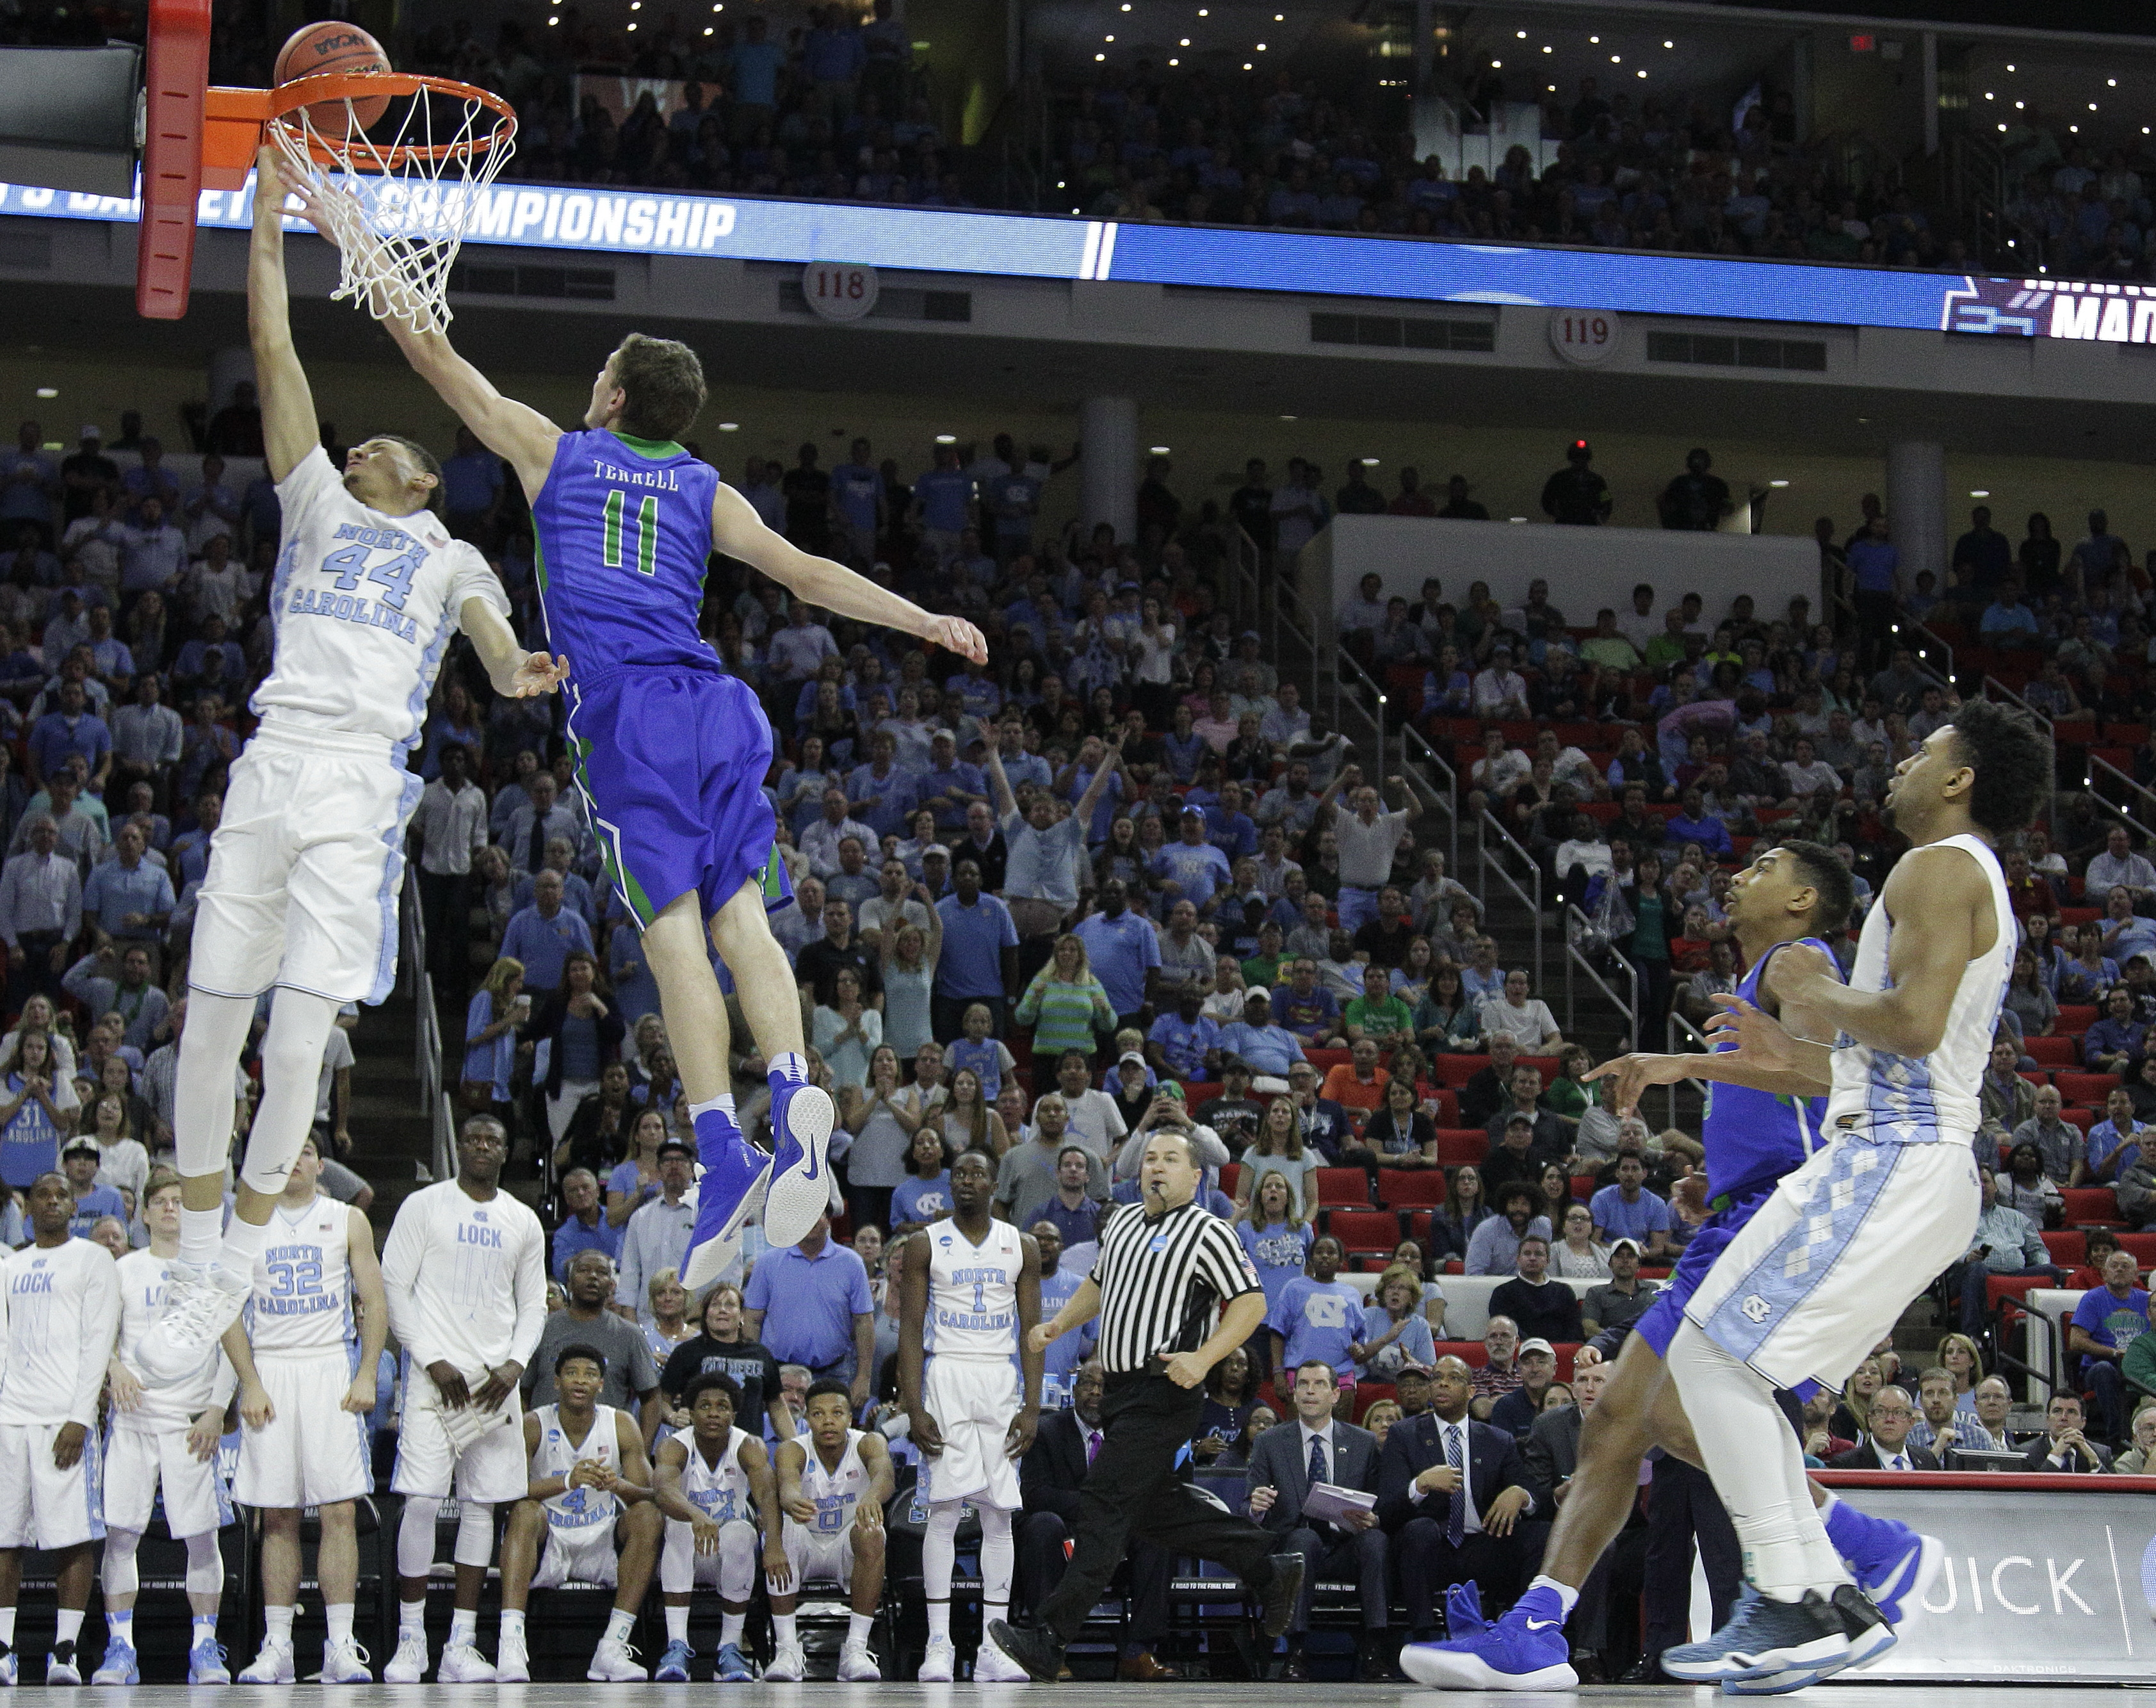 North Carolina forward Justin Jackson (44) shoots over Florida Gulf Coast guard Christian Terrell (11) during the second half of a first-round men's college basketball game in the NCAA Tournament, Thursday, March 17, 2016, in Raleigh, N.C. North Carolina